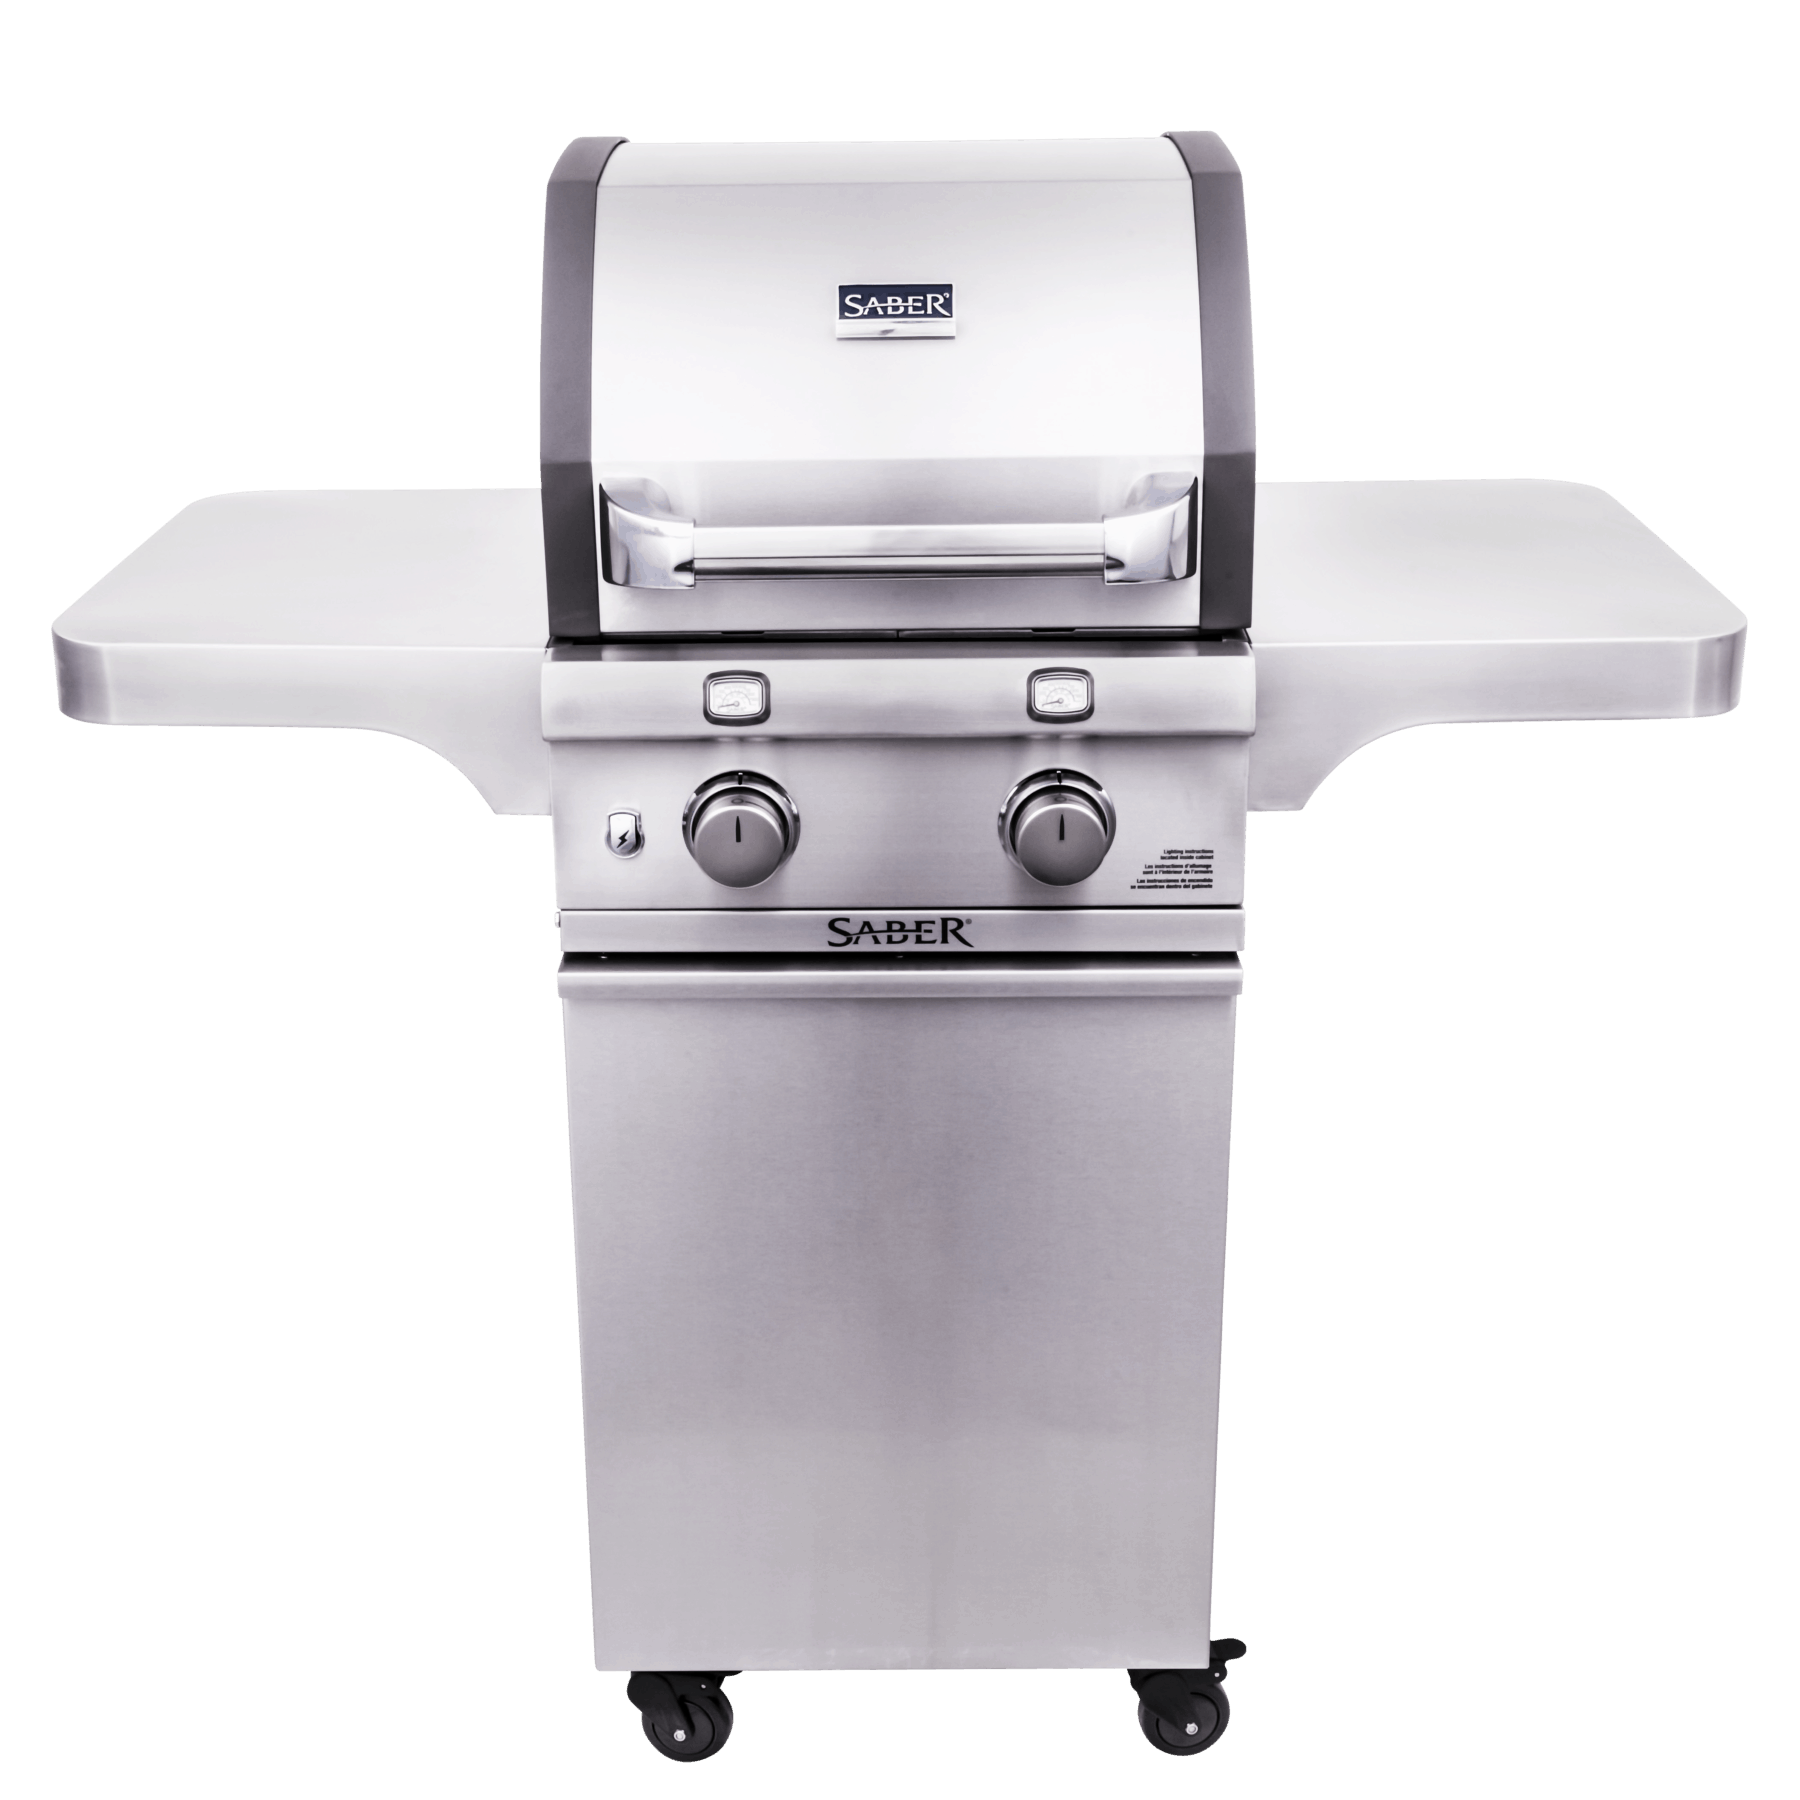 R33CC0317_SABER__Cast_Stainless_2-Burner_Gas_Grill_001